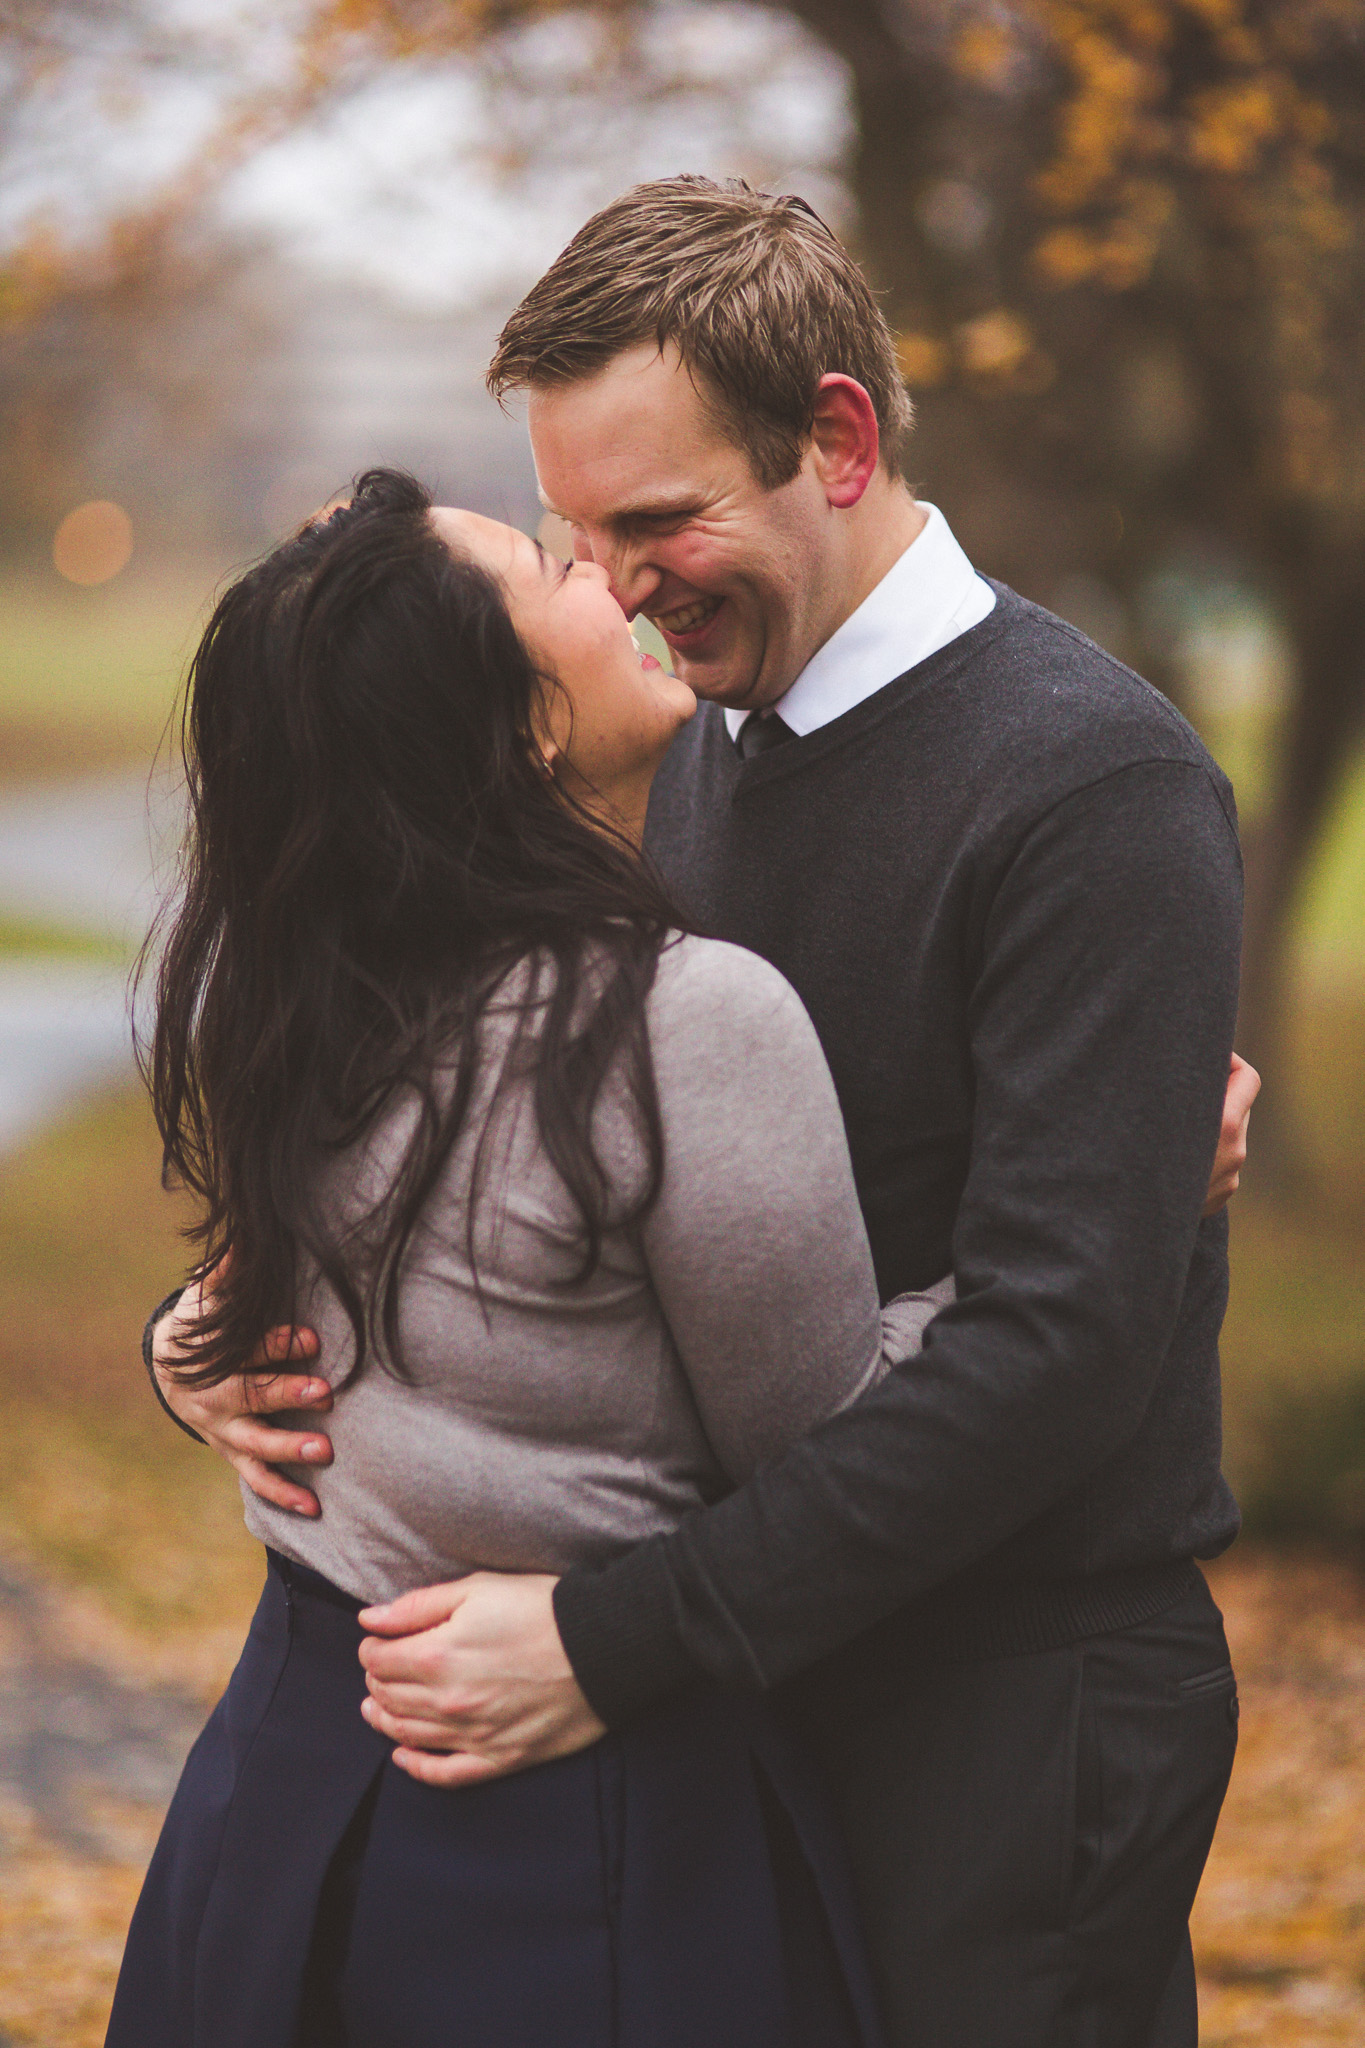 cold-day-for-engagement-photos